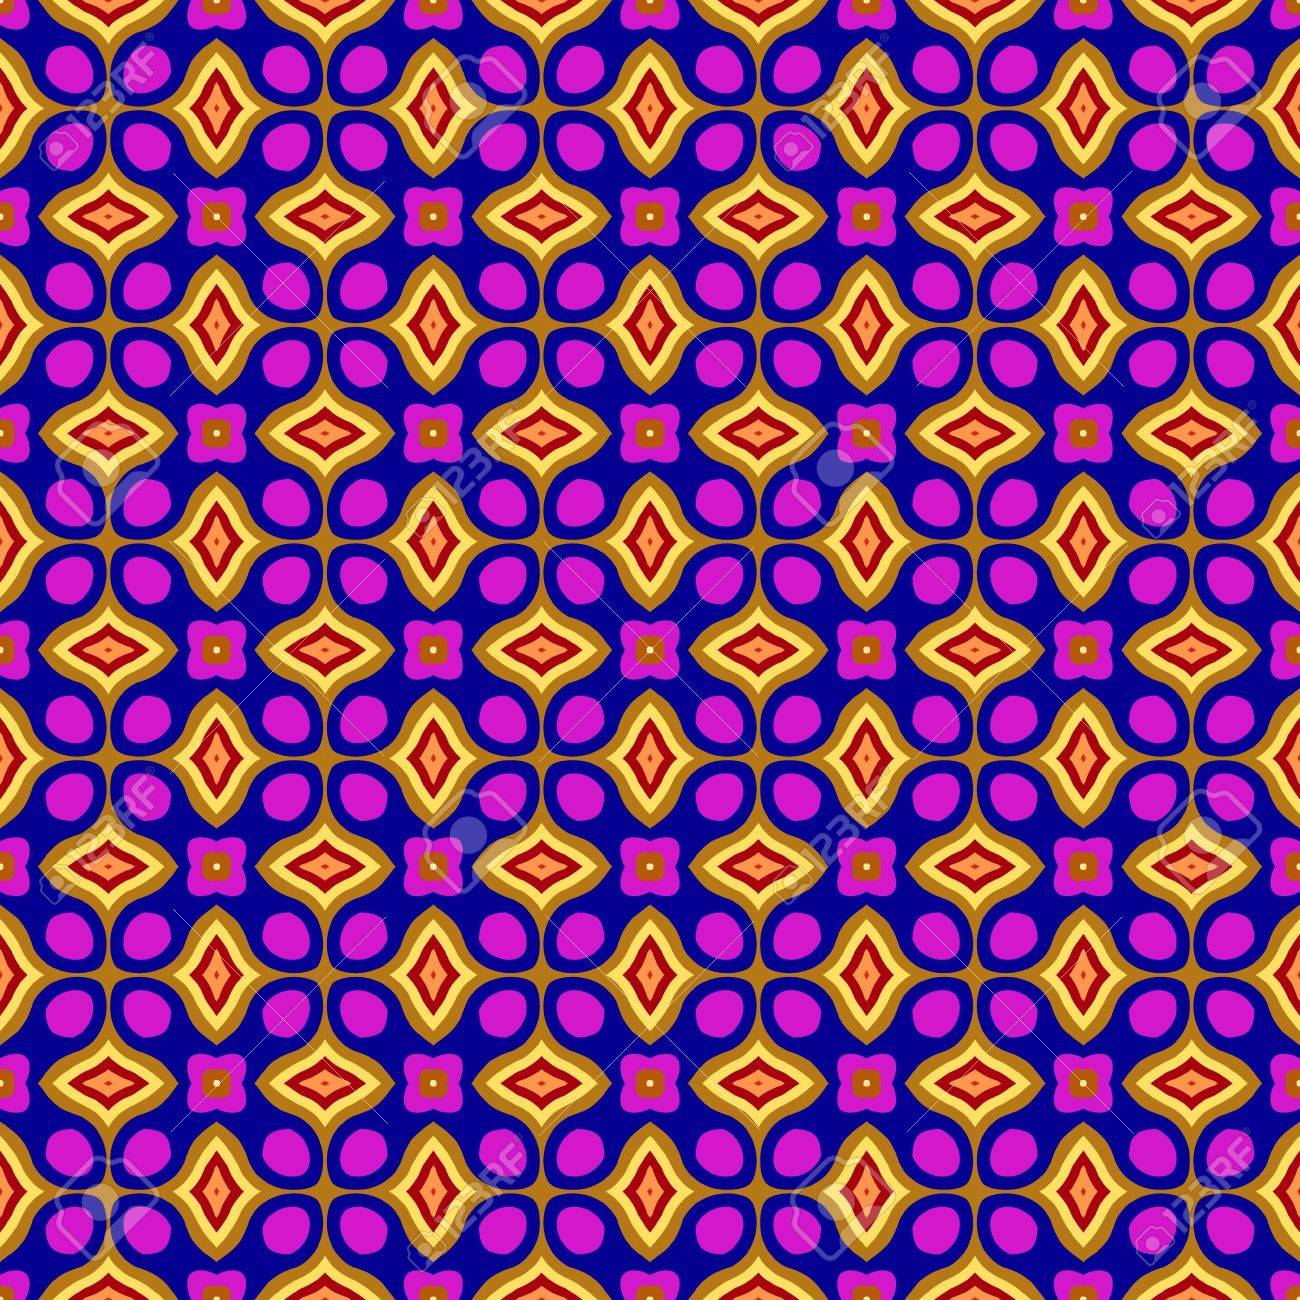 geometric design wallpaper harlequin colorful abstract retro patterns geometric design wallpaper background stock photo 6164255 abstract retro patterns geometric design wallpaper